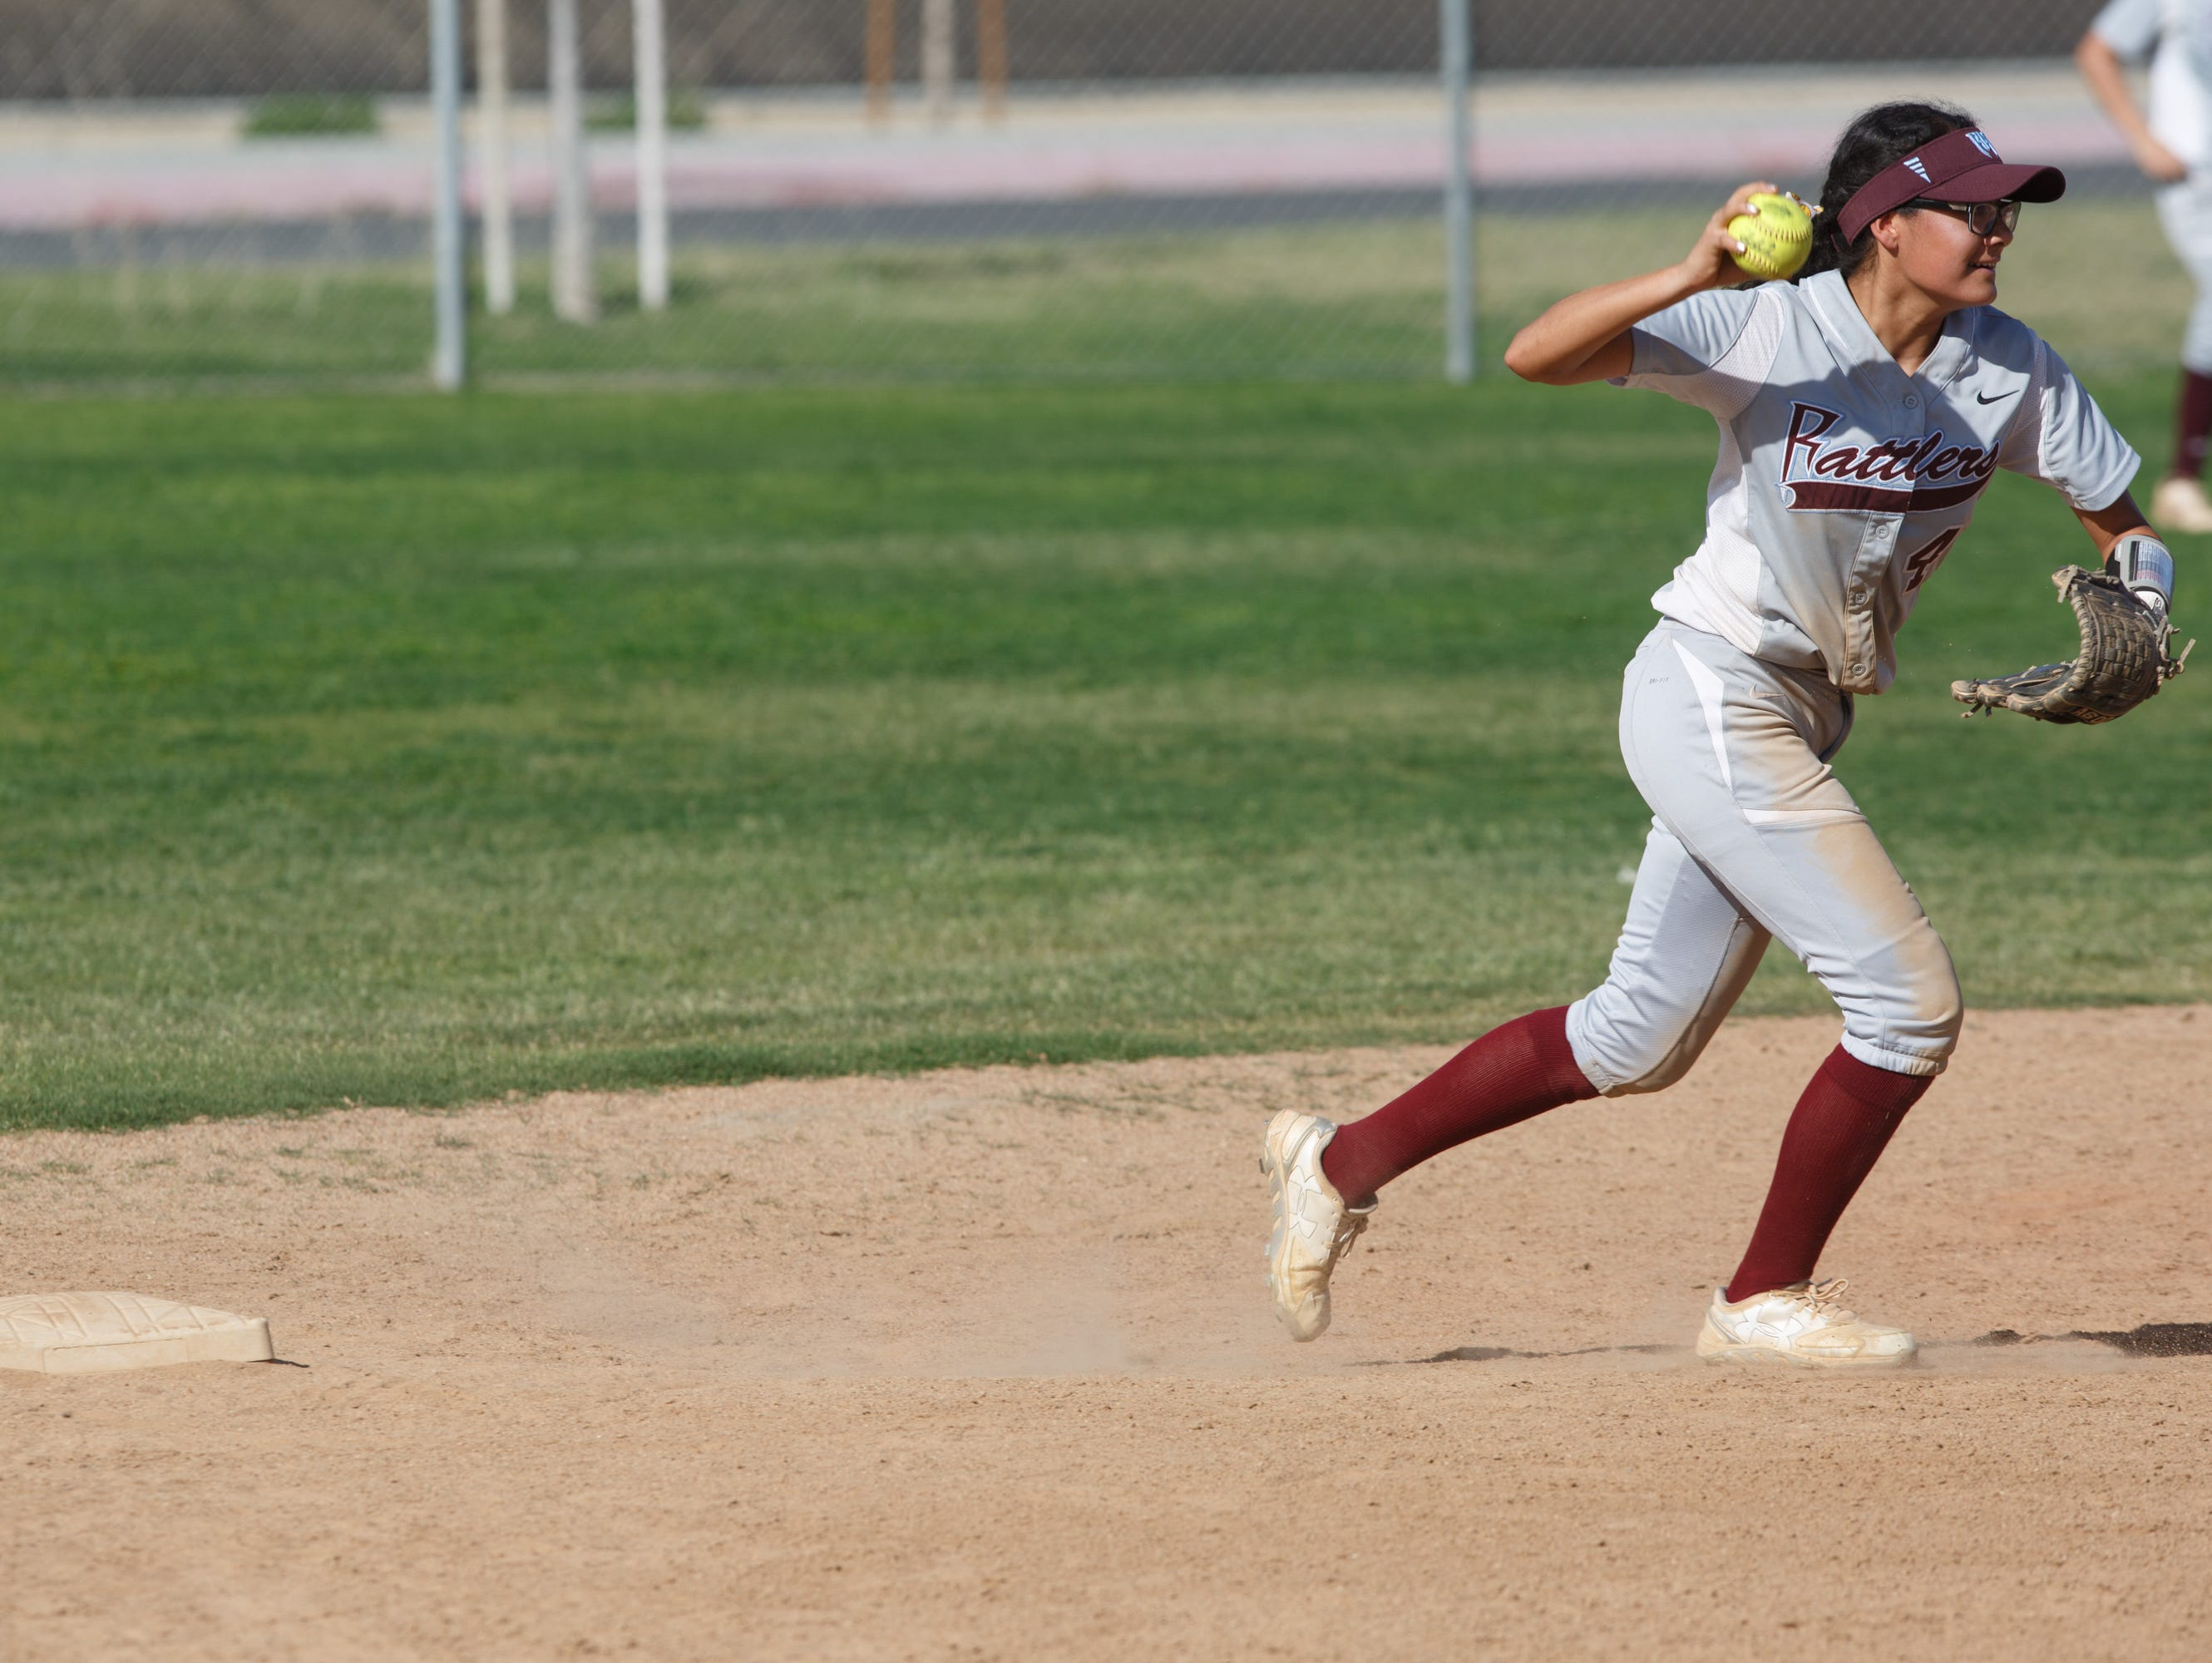 Alejandra Ramirez throws to first base for an out against the Blackhawks at La Quinta High School, Tuesday, March 14, 2017.